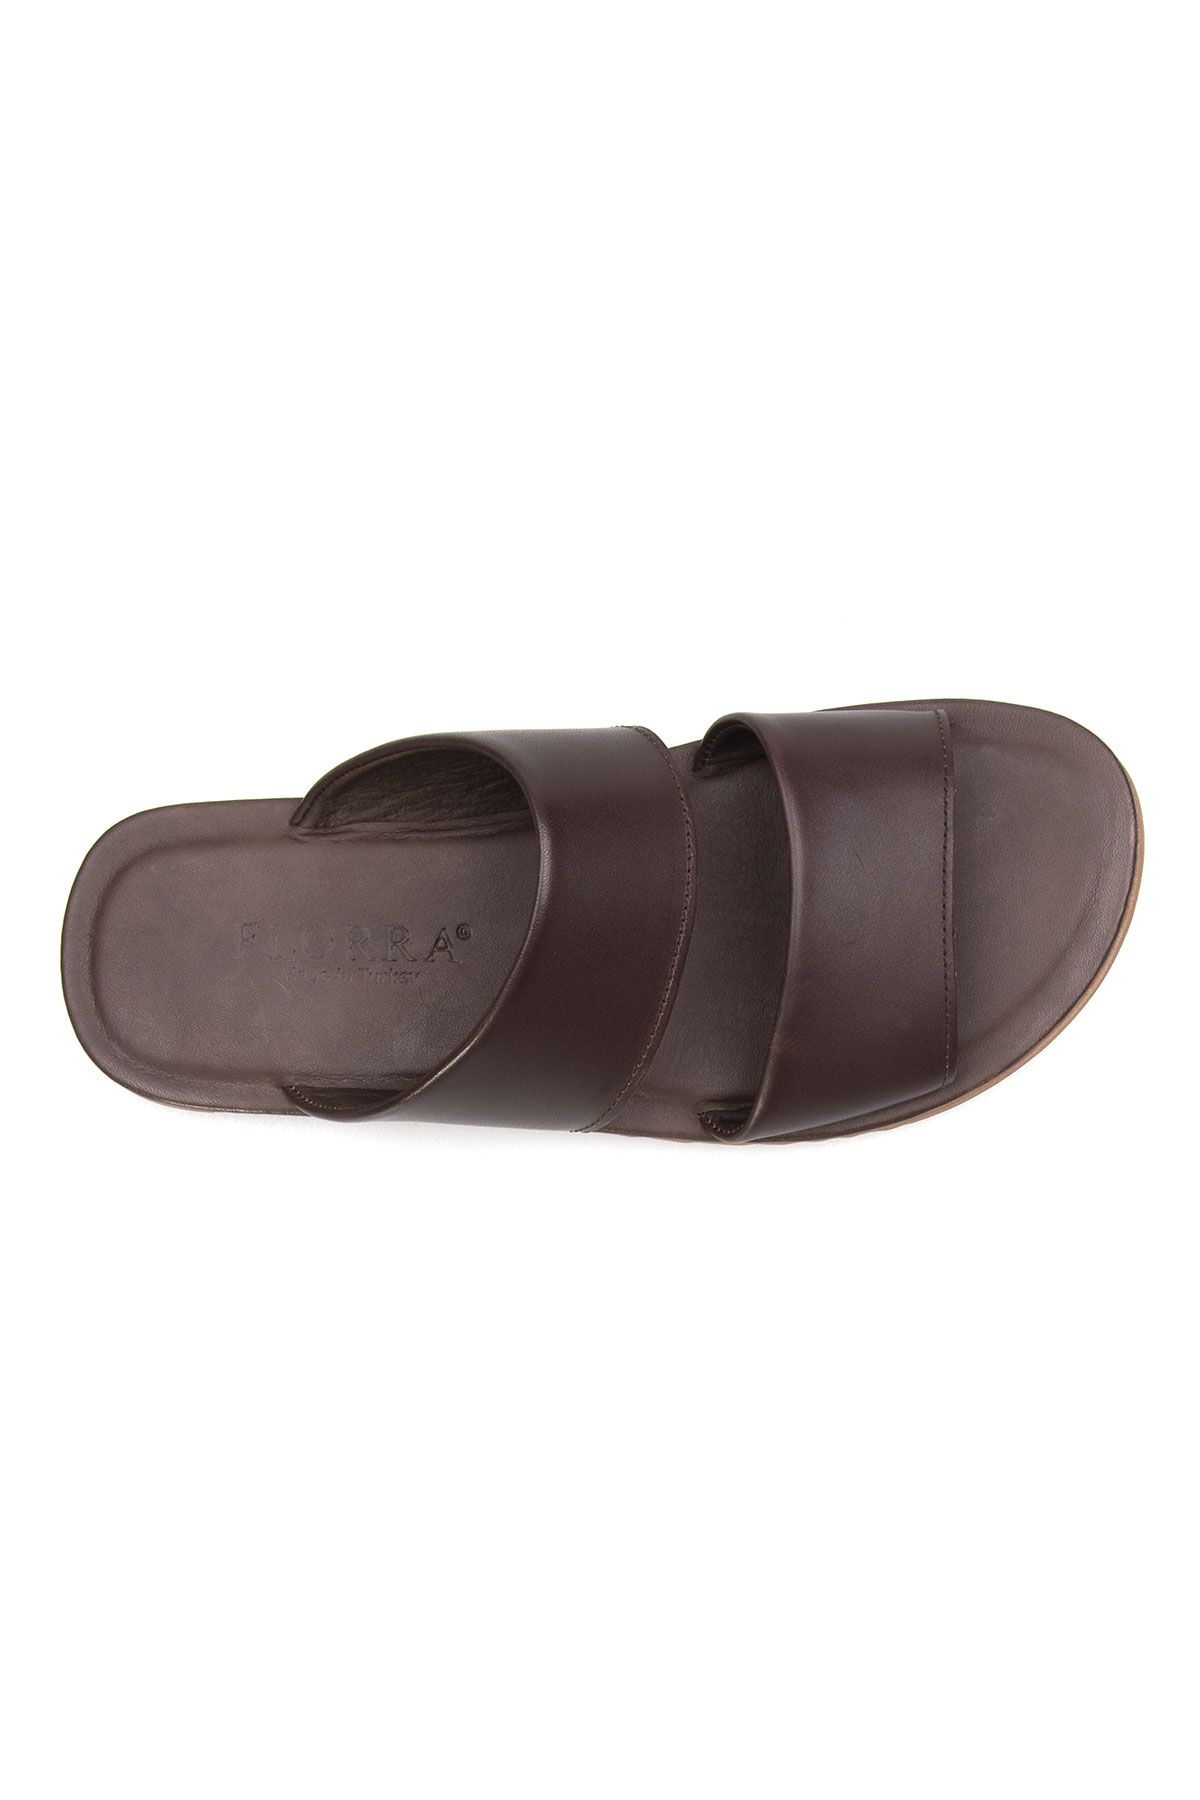 Florra Genuine Leather Men Slippers 203125 Brown